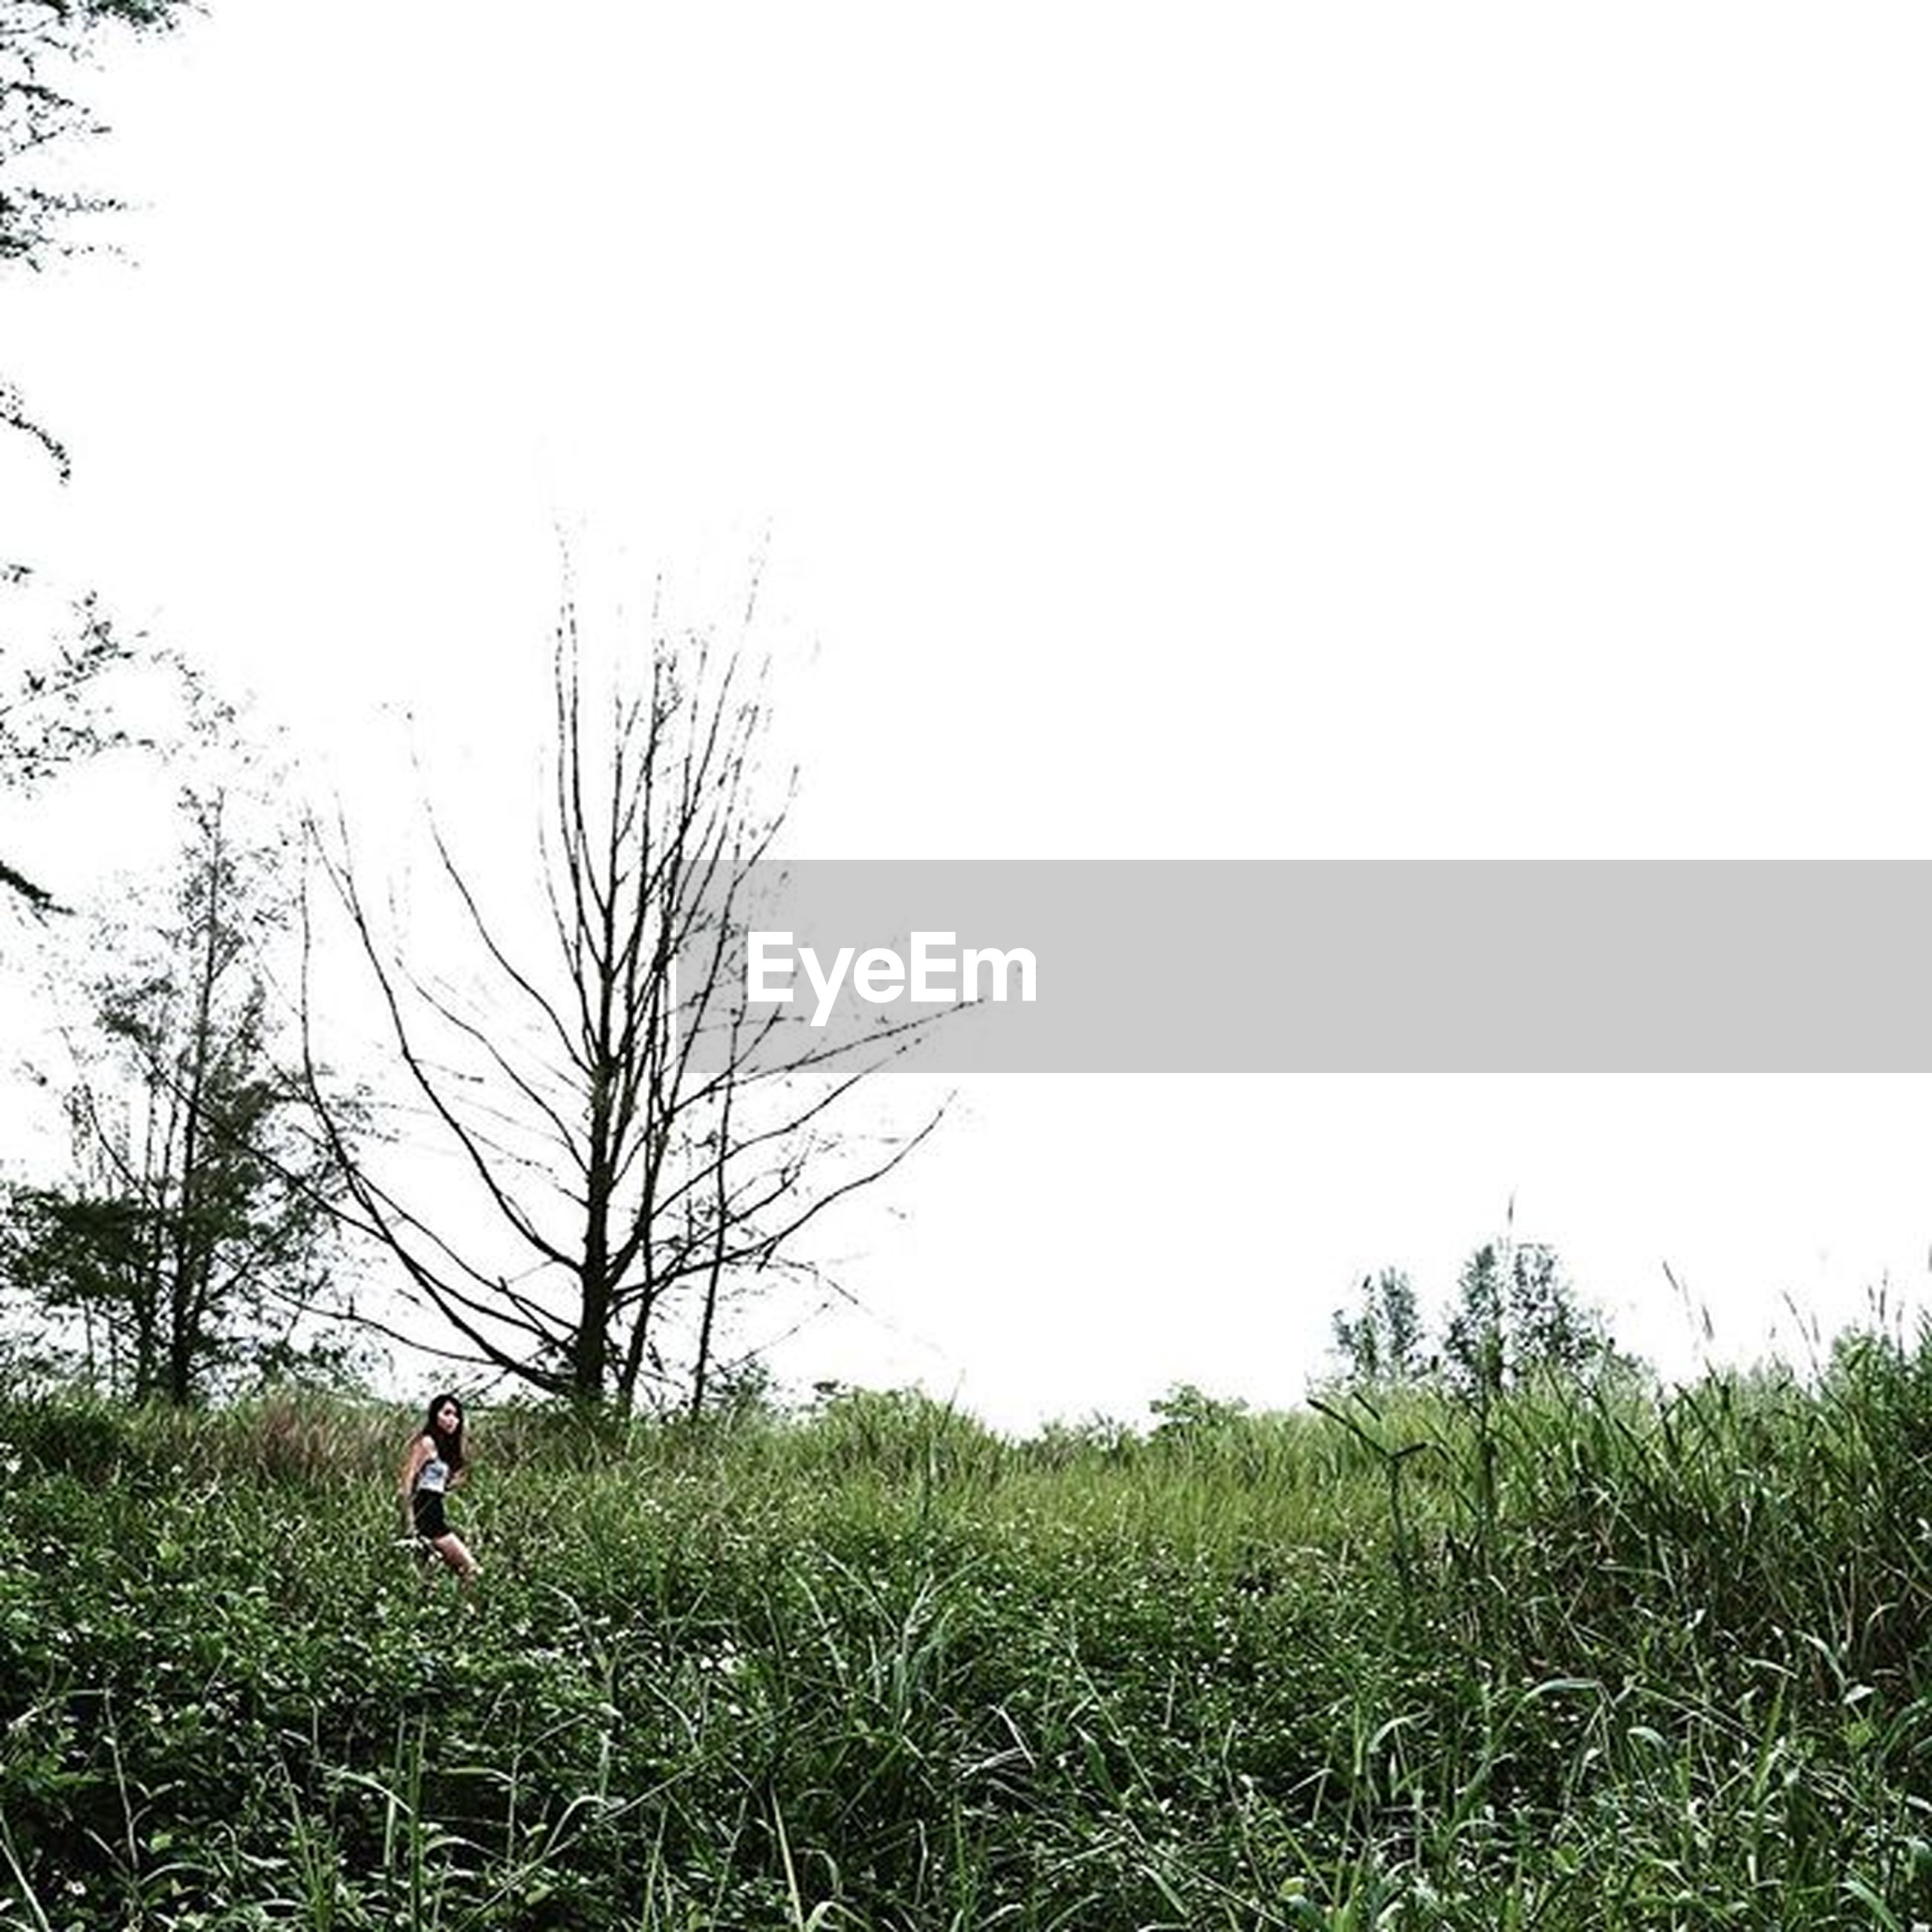 grass, lifestyles, leisure activity, full length, men, field, clear sky, tree, tranquility, grassy, nature, tranquil scene, copy space, landscape, standing, rear view, beauty in nature, person